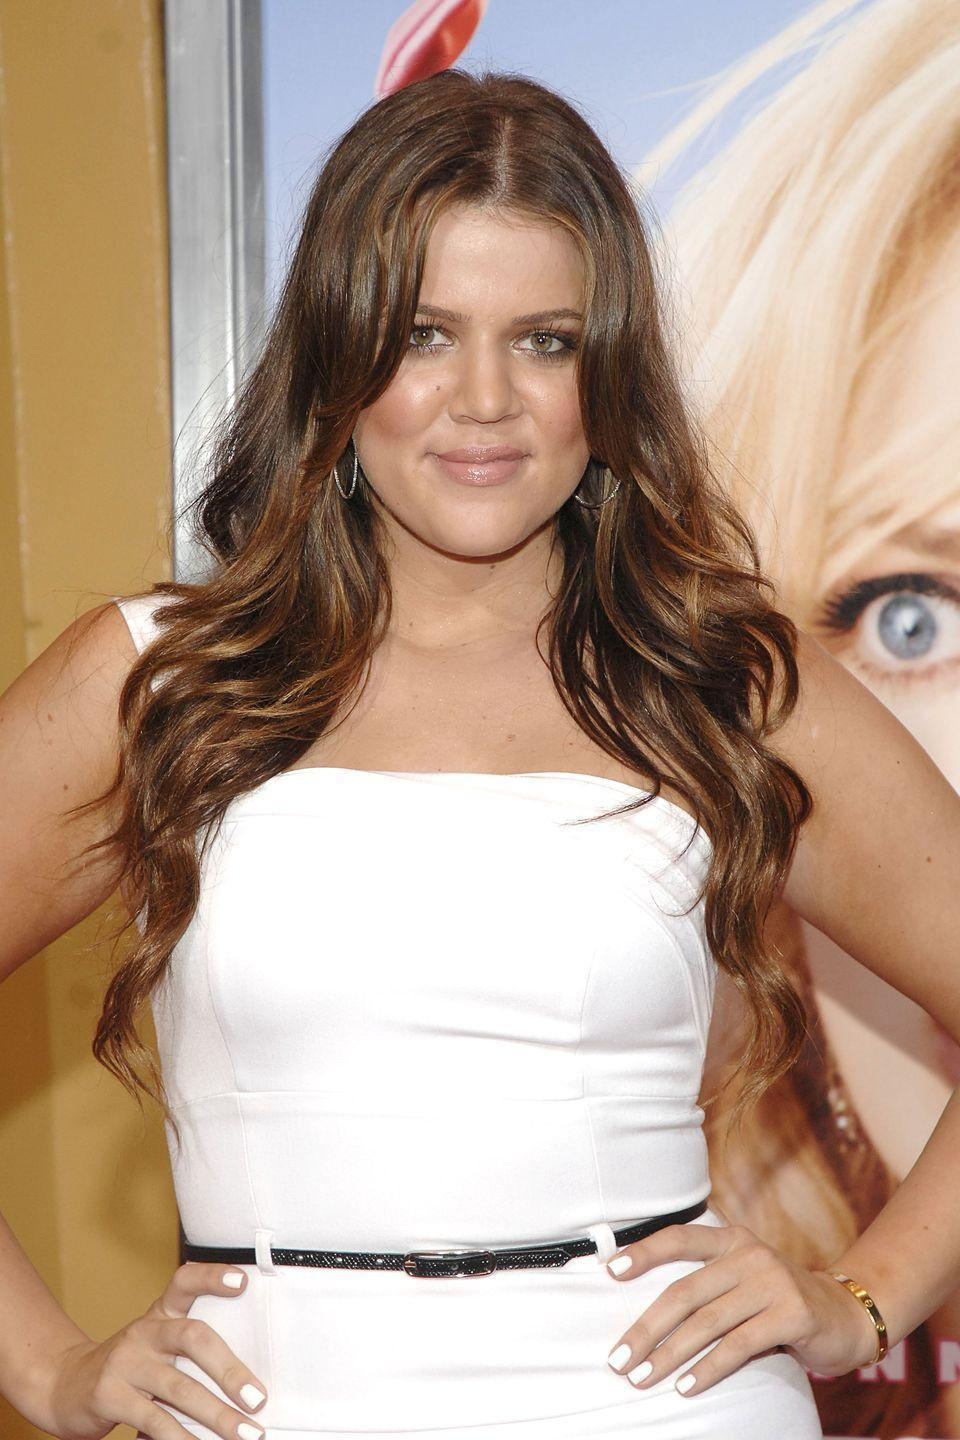 <p>Khloe Kardashian always had a different look than her older sisters and dealt with a lot of unfair body shaming throughout her career. In the early 2000s, she hadn't quite made a name for herself the same way her sisters did. </p>